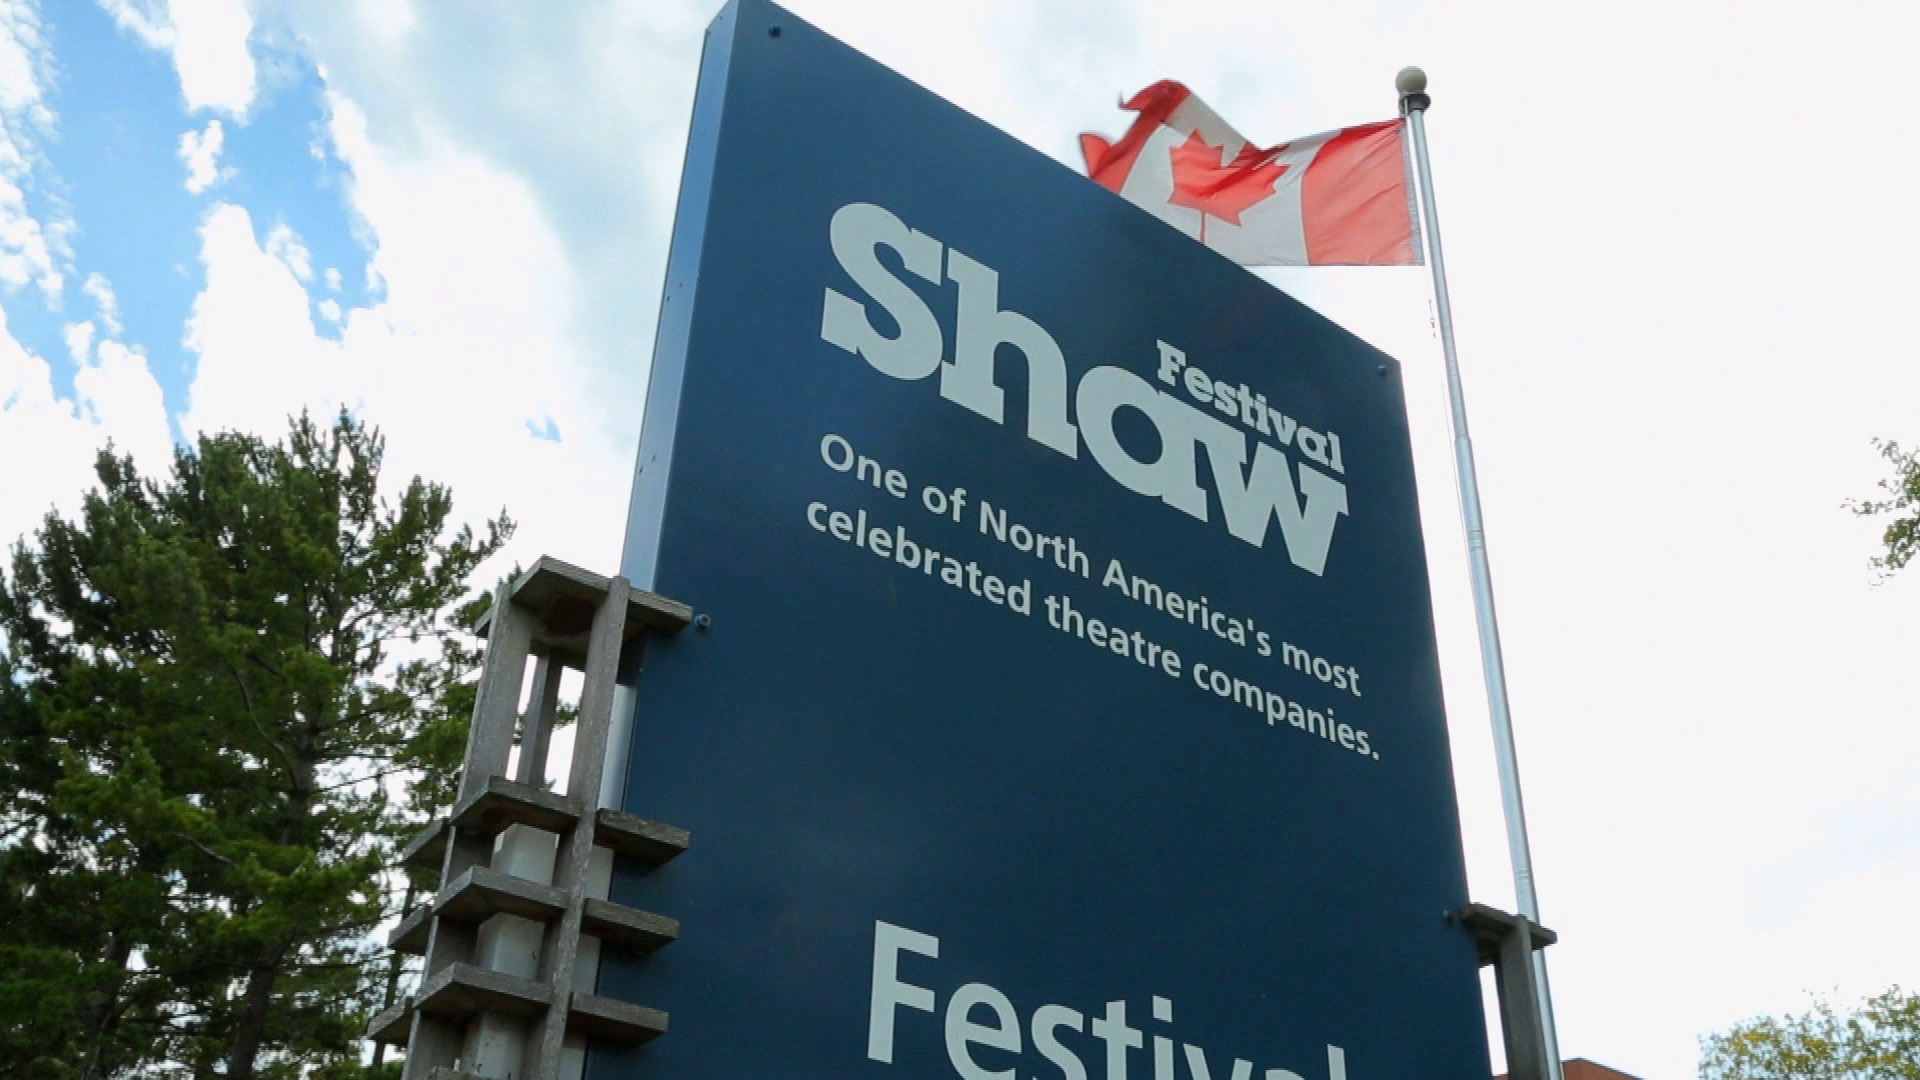 Learn more about the Shaw Festival